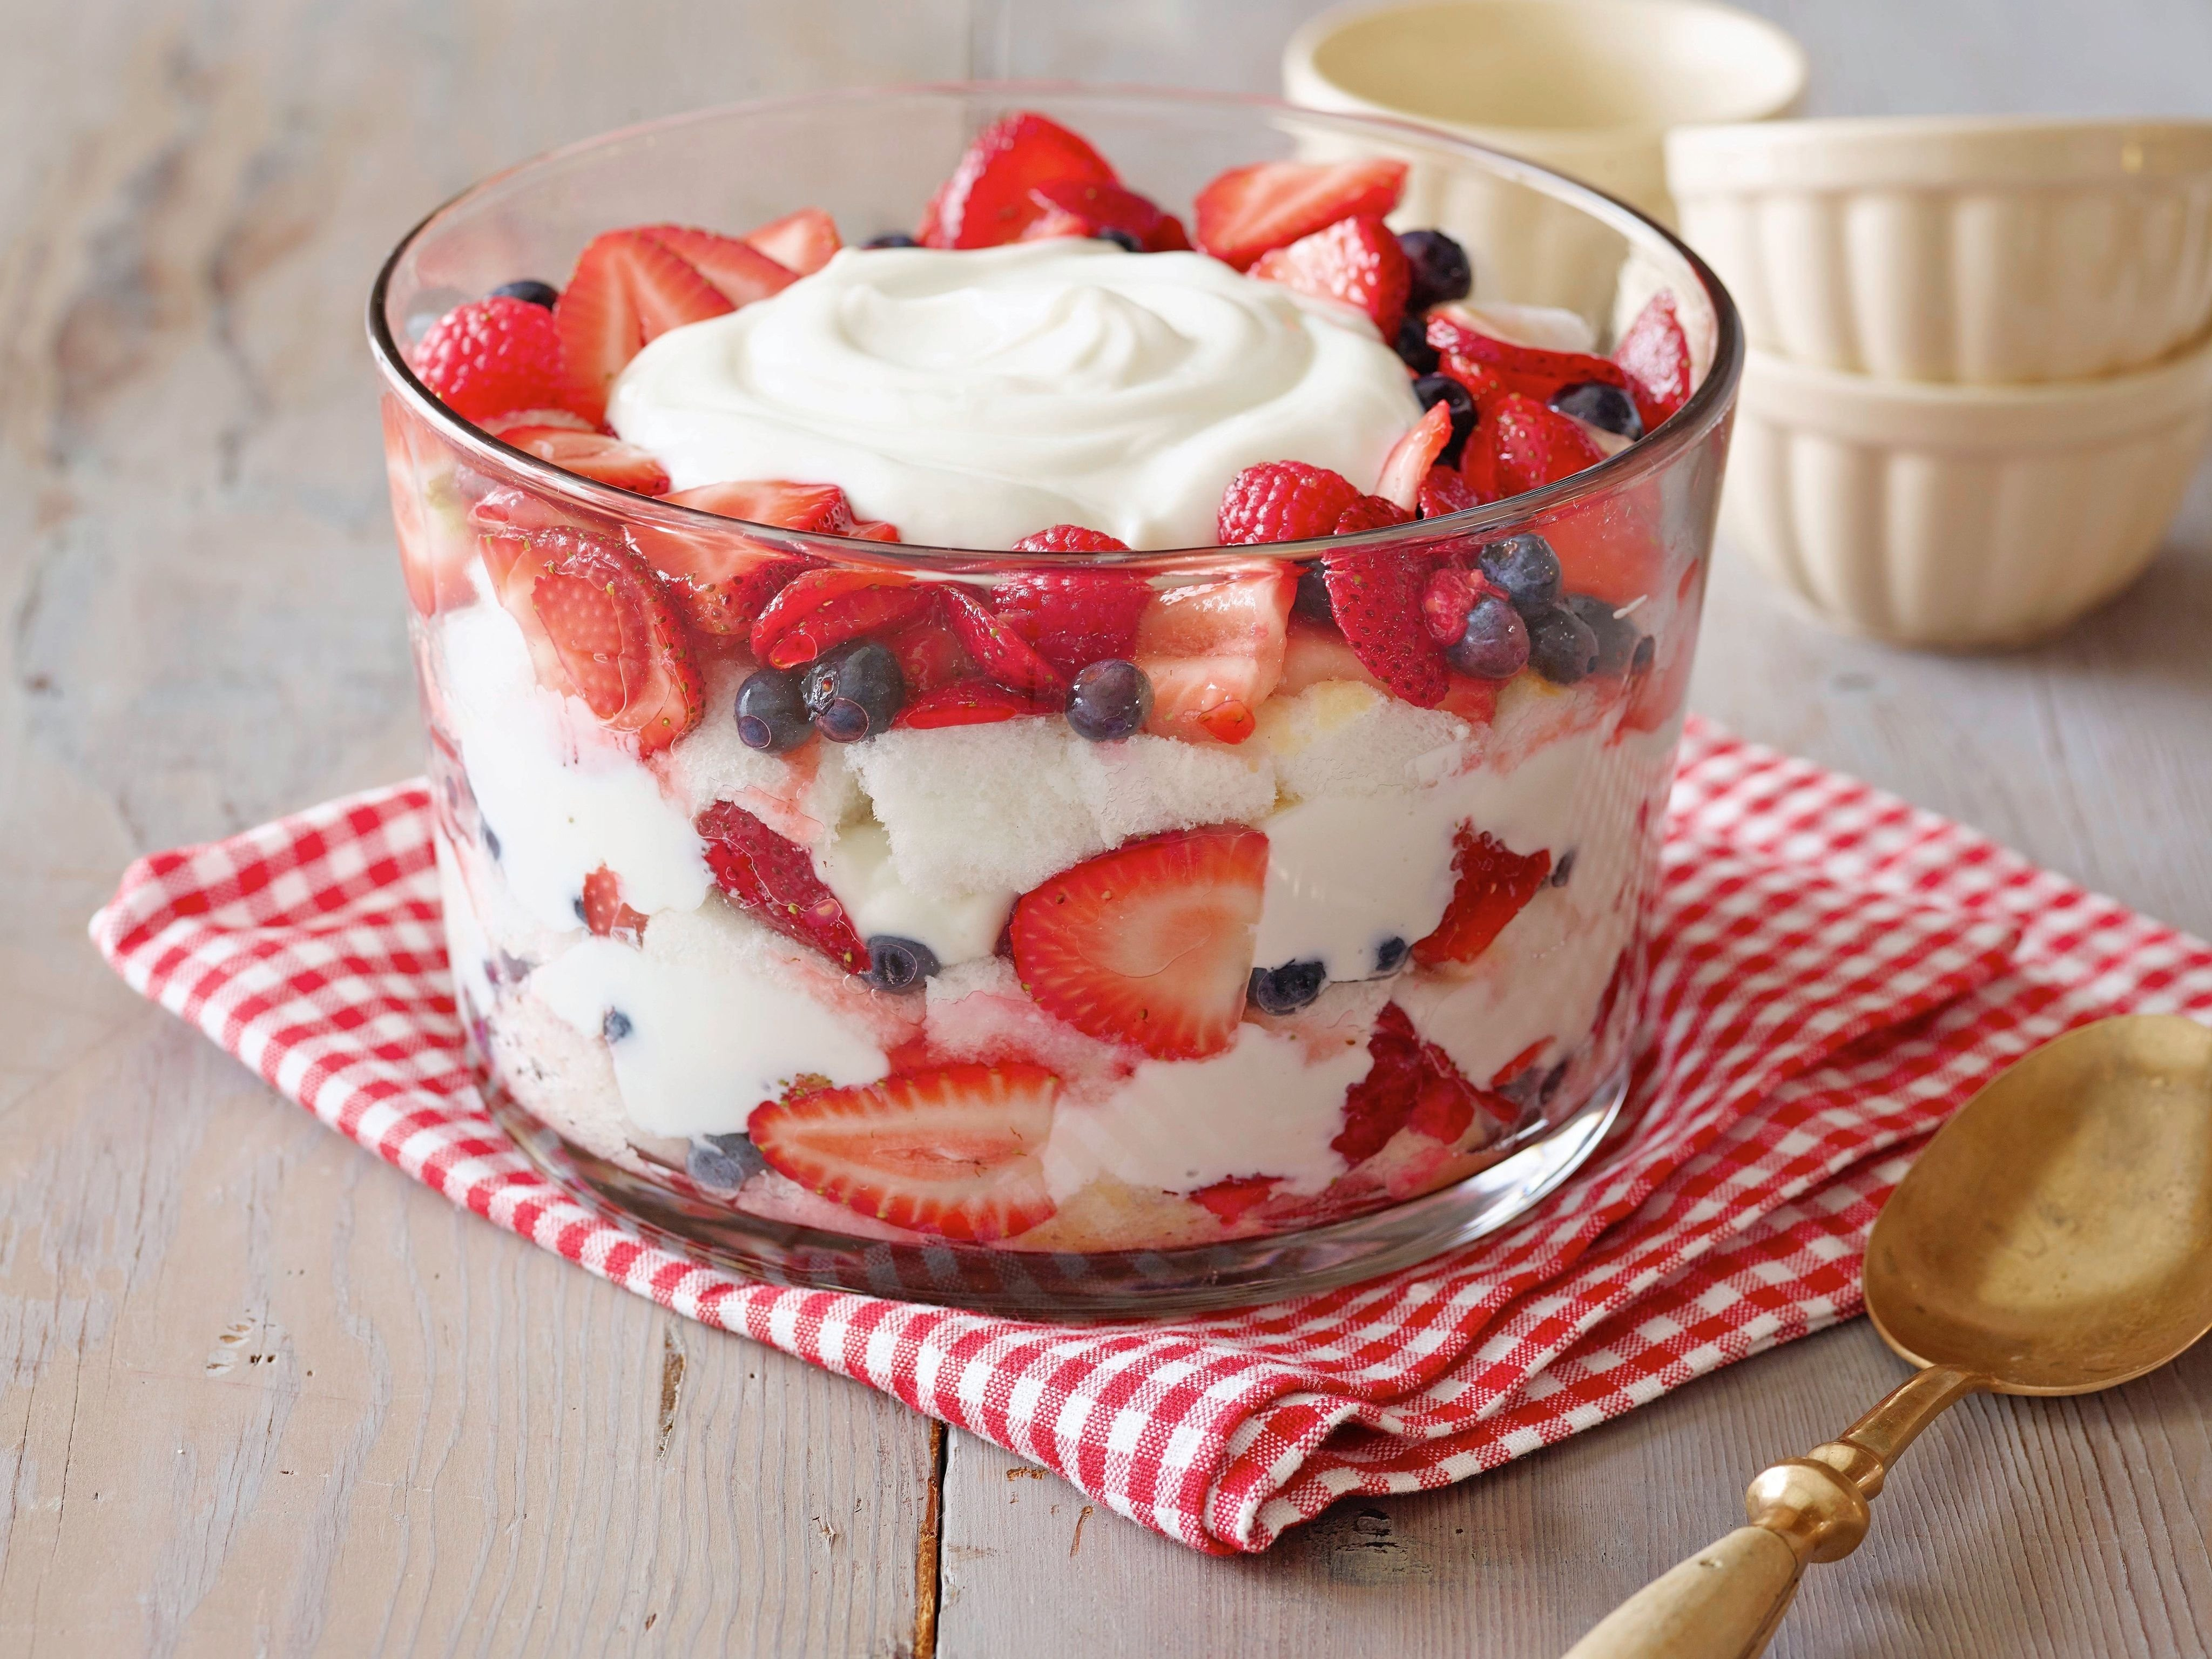 10 Attractive Angel Food Cake Topping Ideas top cookout desserts recipes and ideas food network berry trifle 1 2020